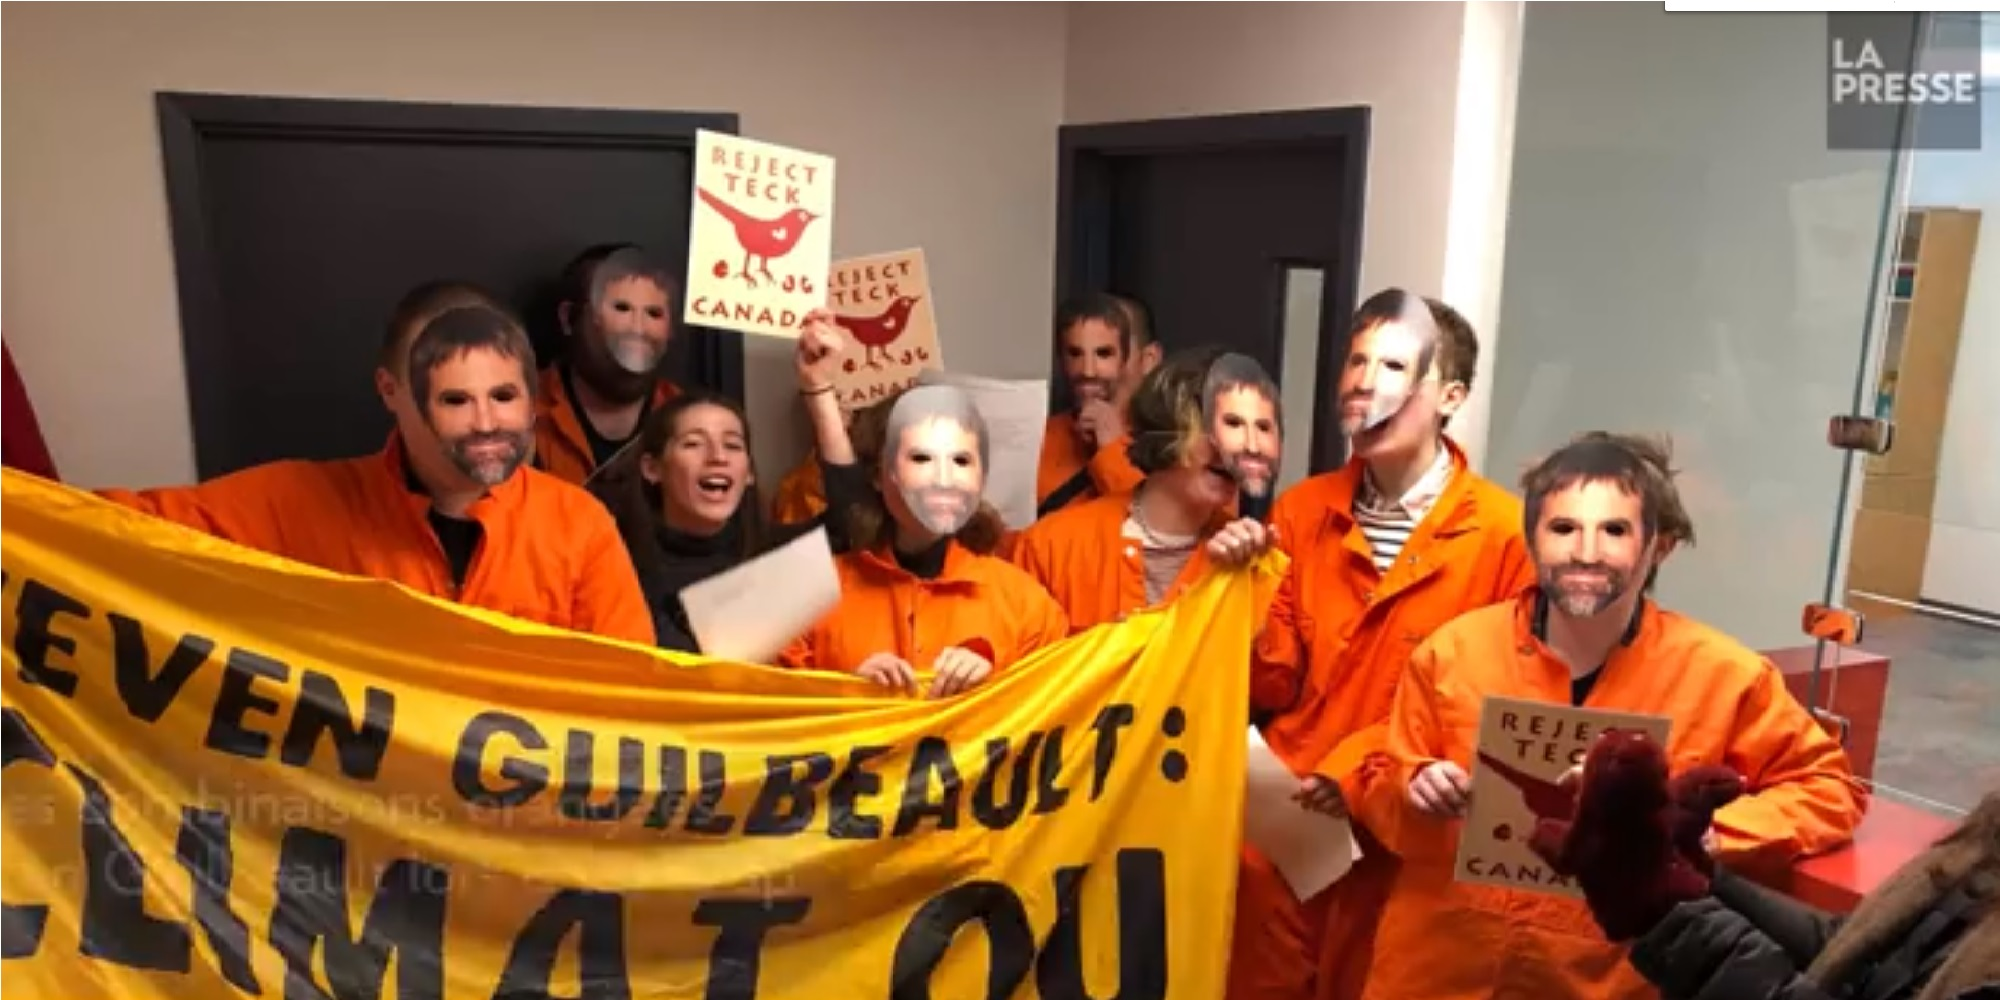 Protestors occupy office of Trudeau minister who advocated for media censorship